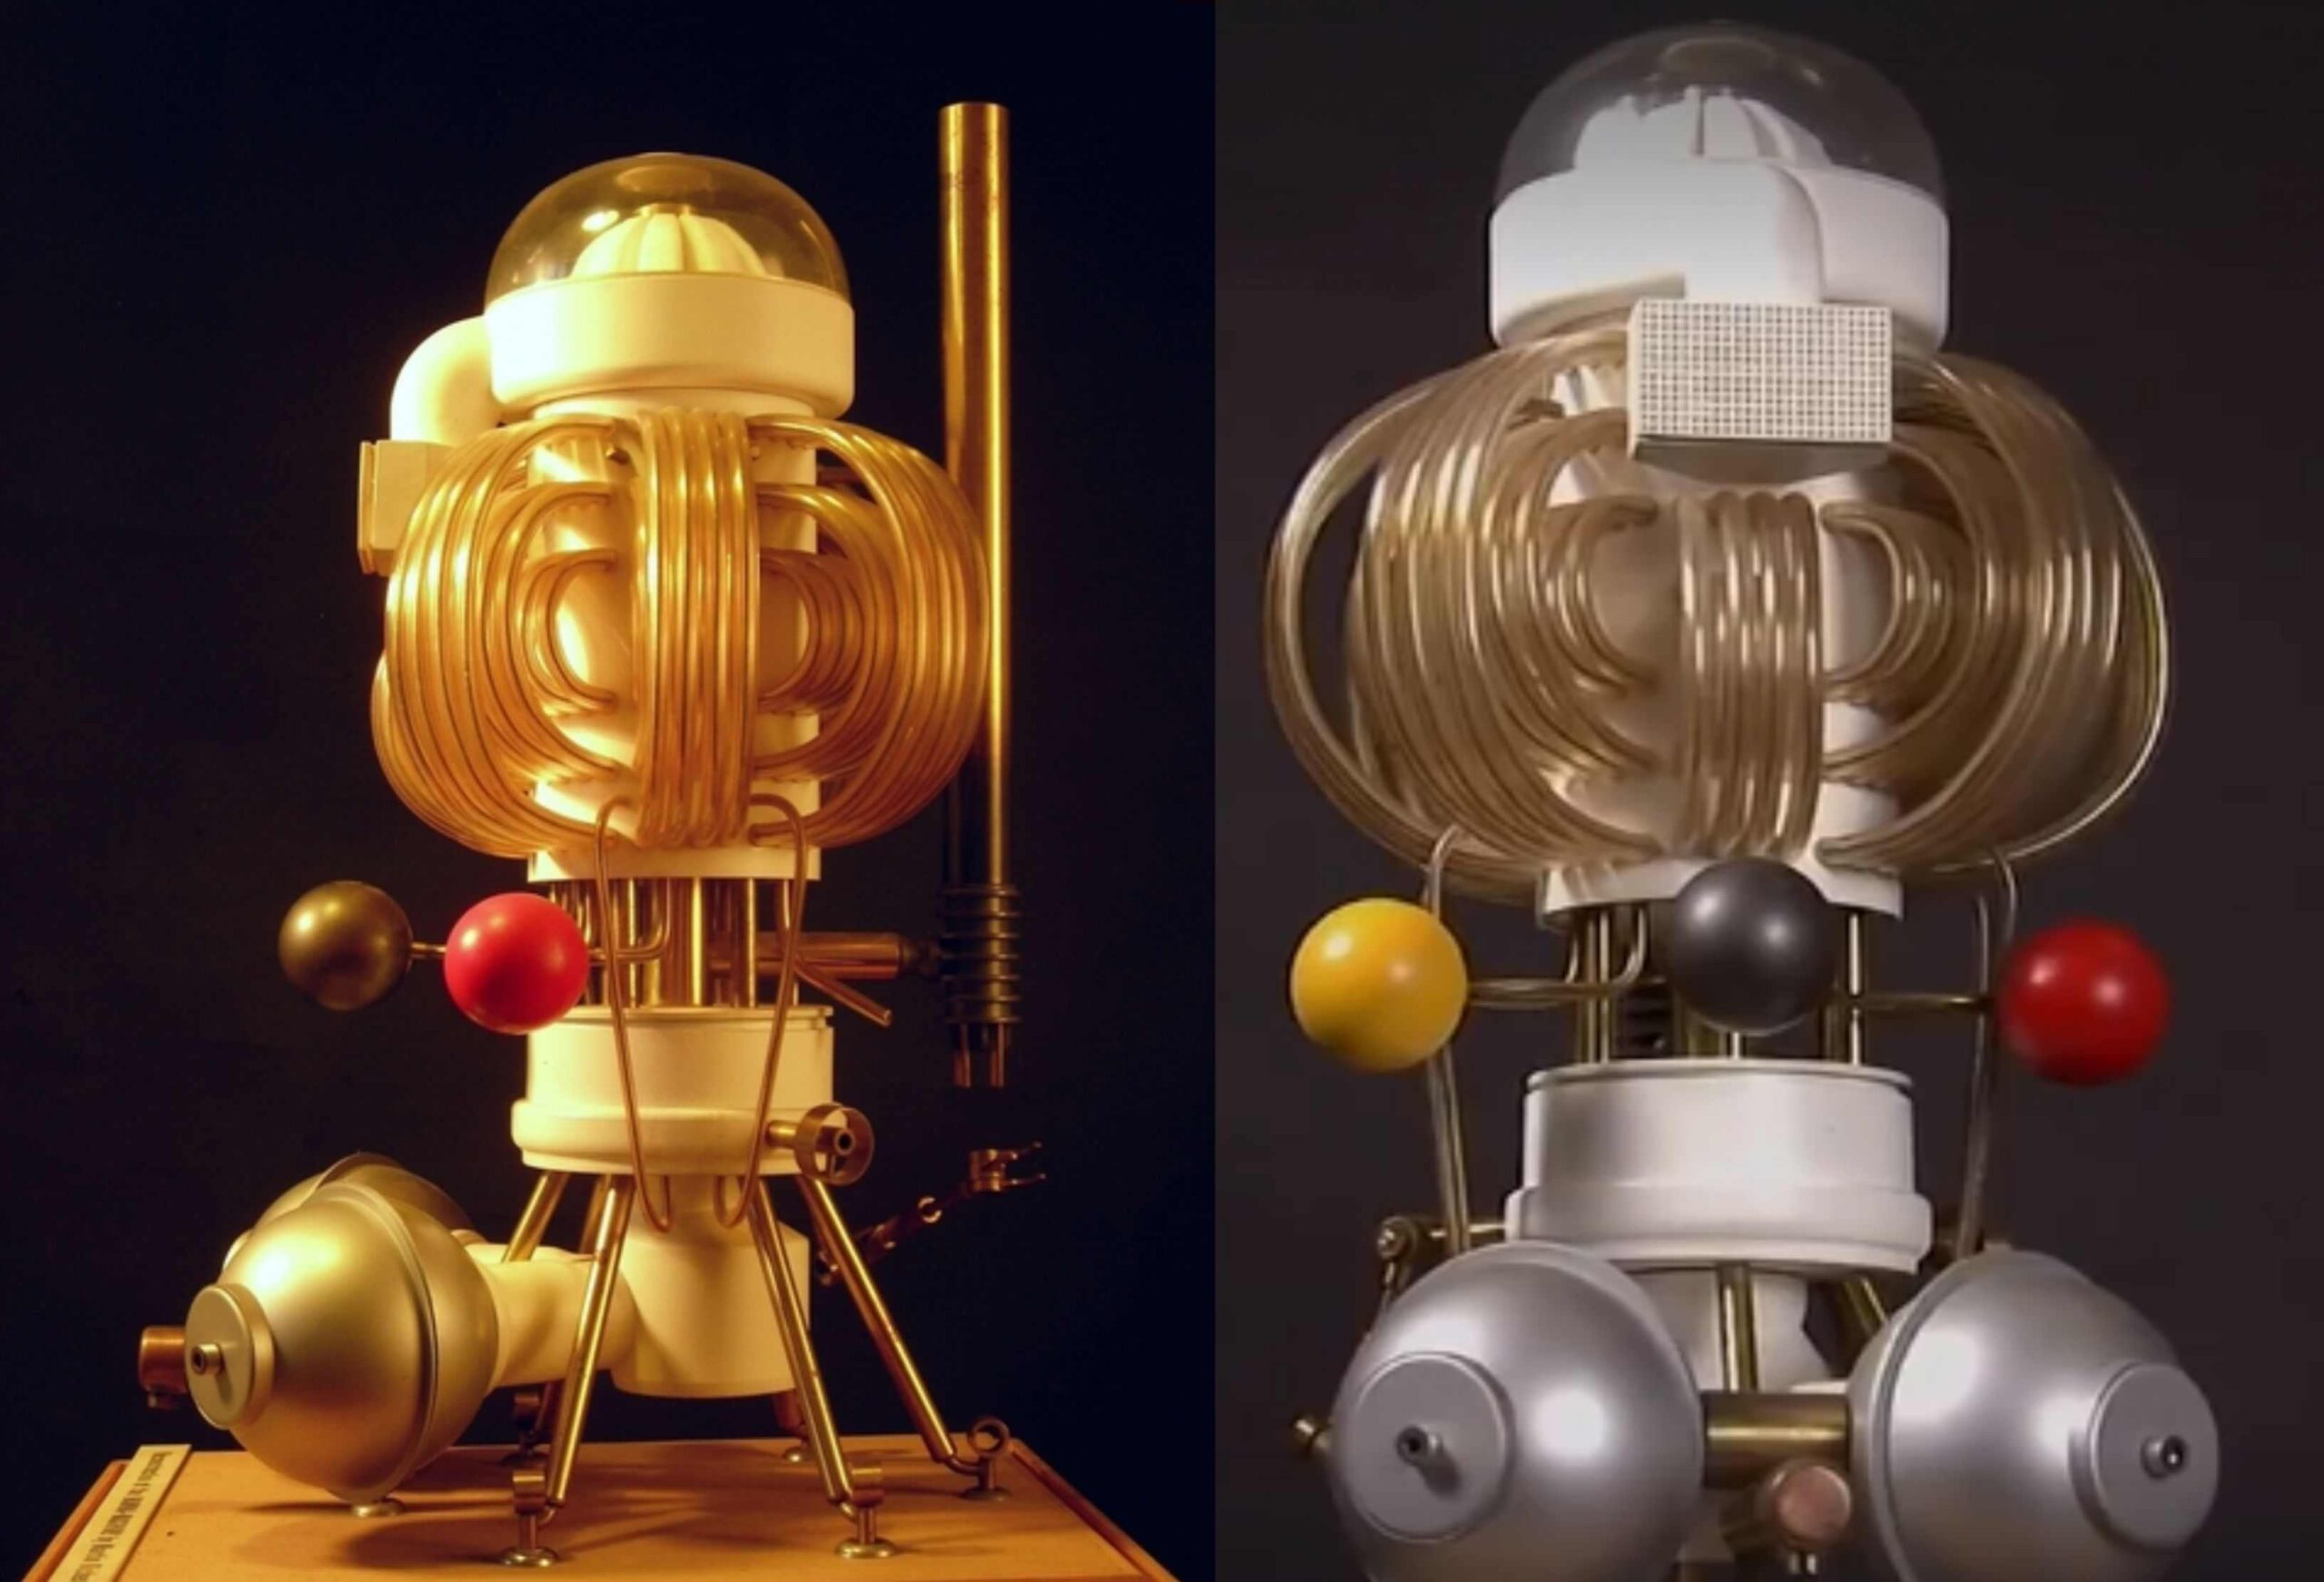 The Manna Machine: The mysterious alien machine that produced food for desert people 6